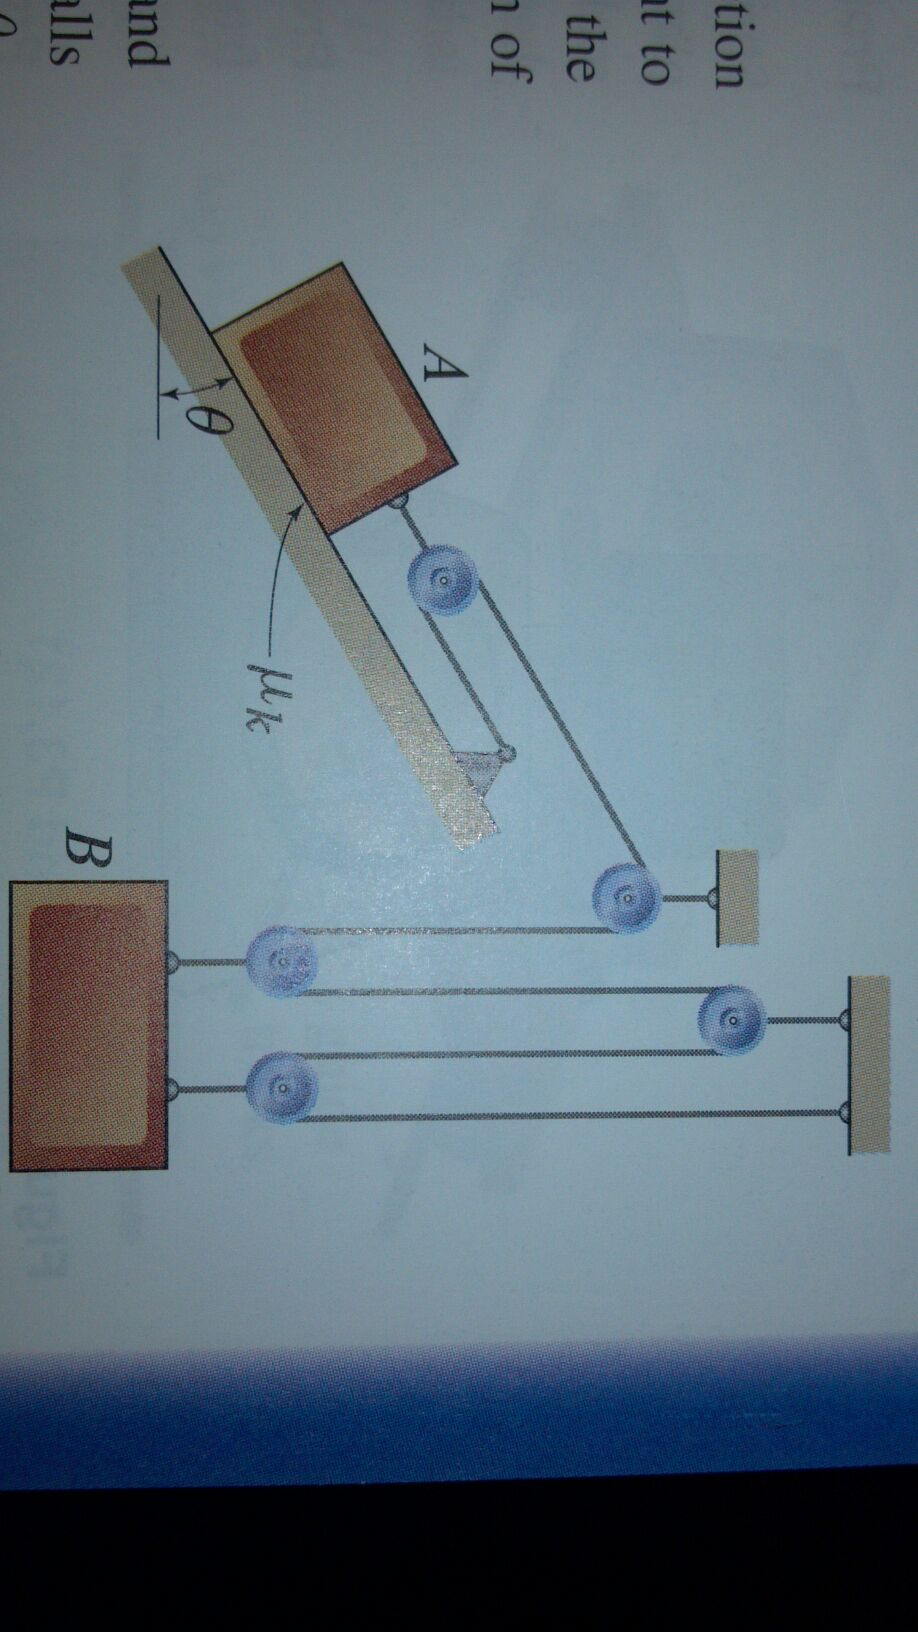 Blocks A and B, with masses Ma= 5kg and Mb= 3kg, r